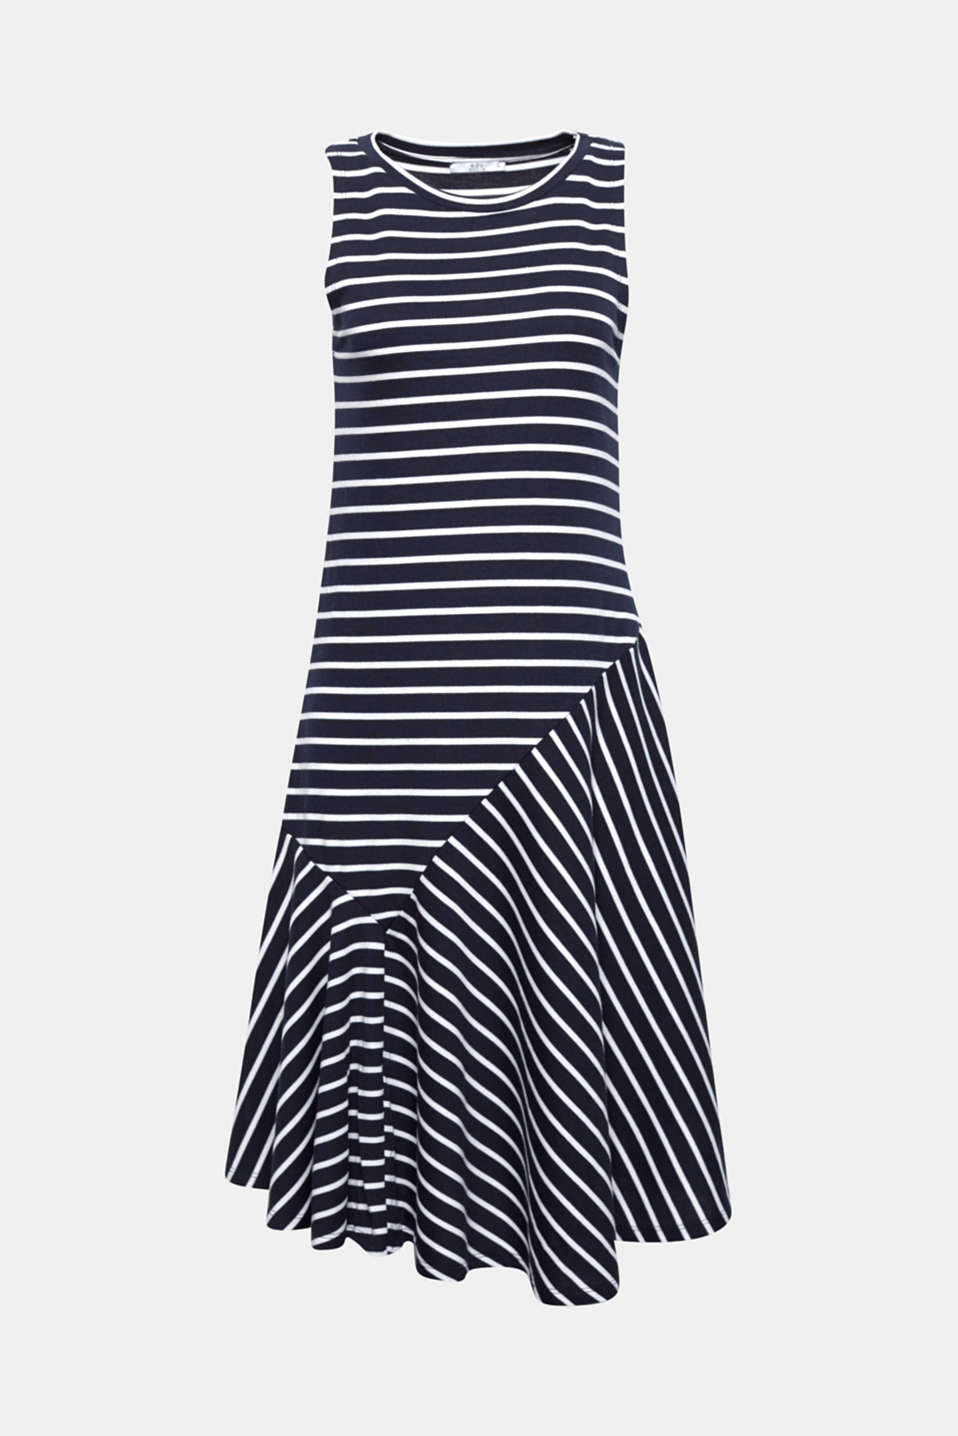 This nautical, striped ribbed jersey dress with a flared flounce hem is the perfect all-rounder for summery daytime looks.